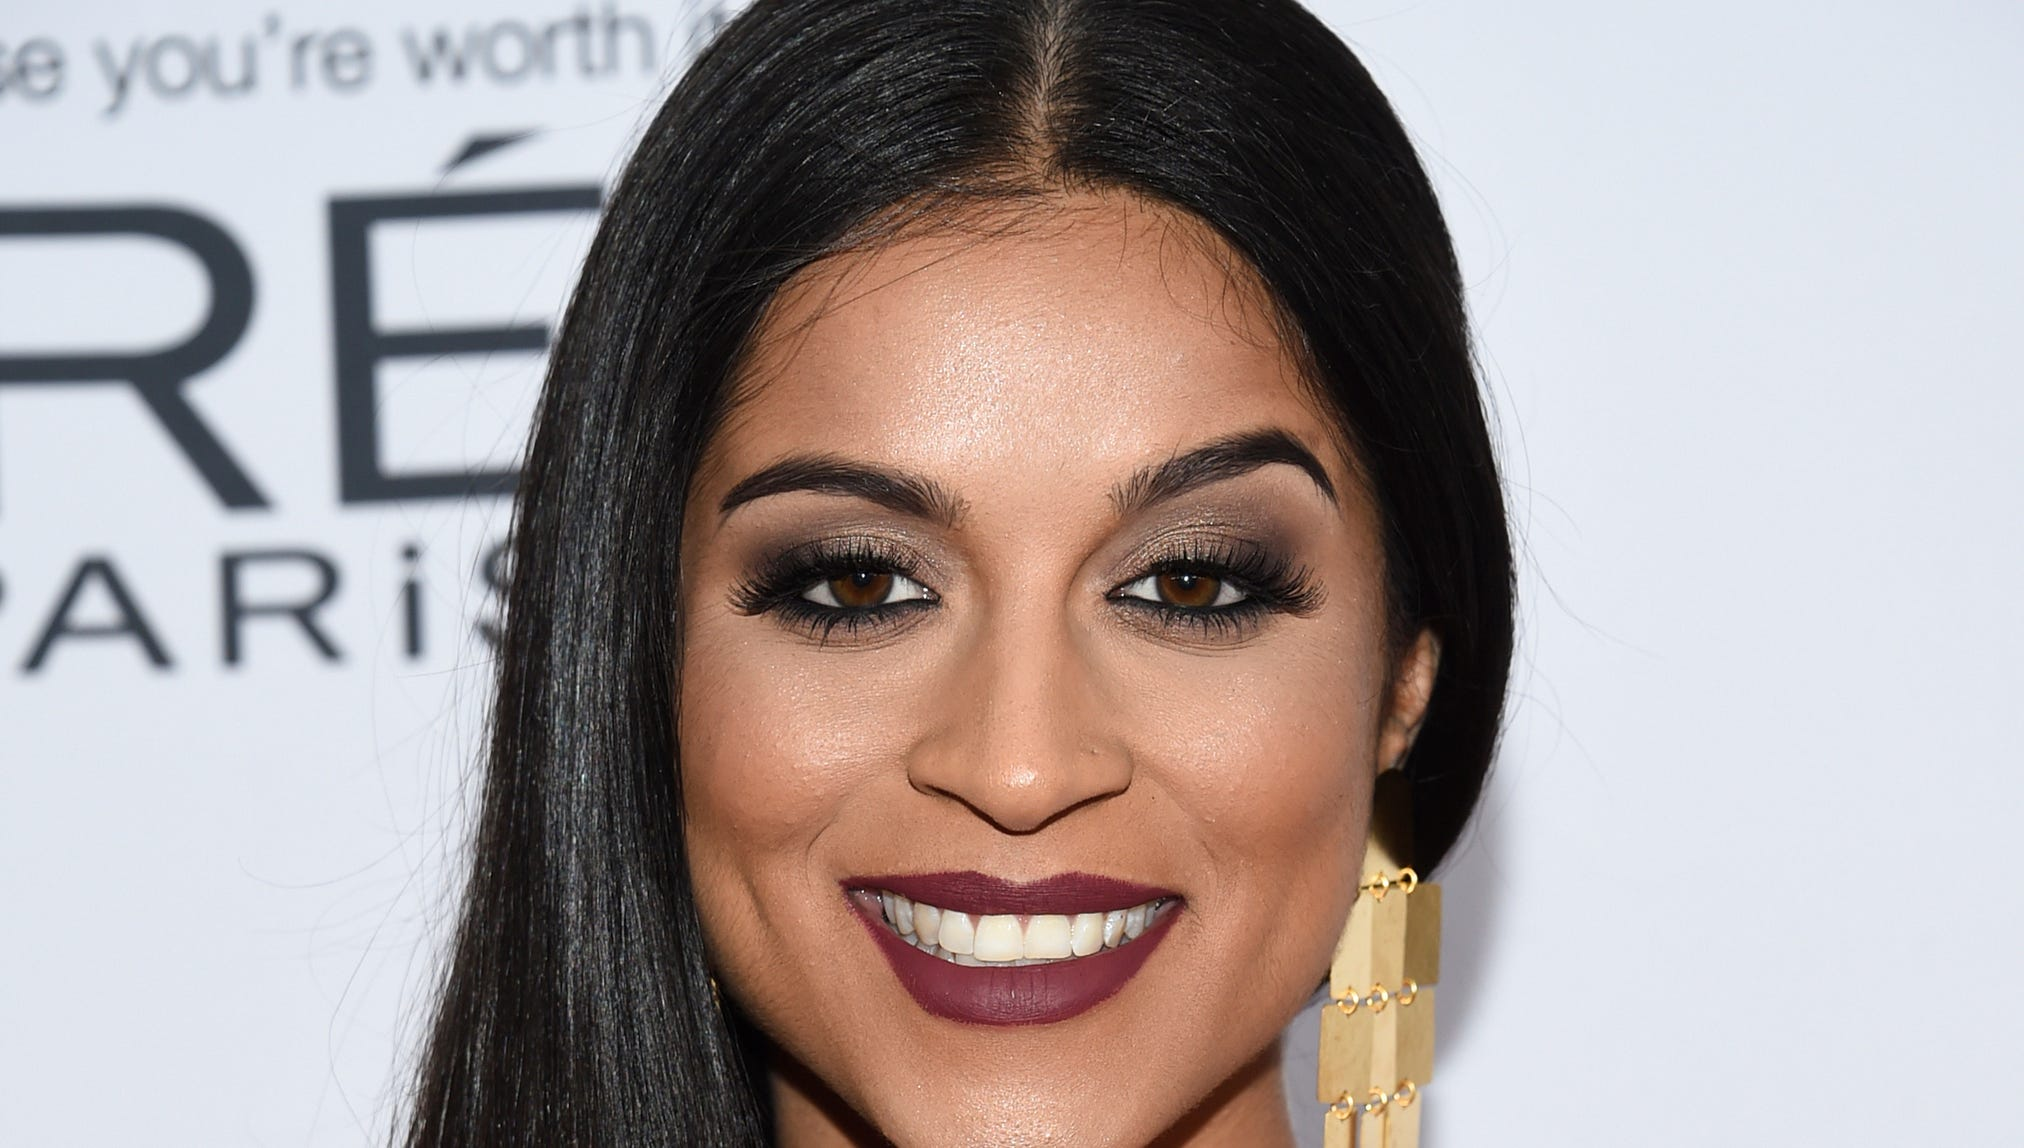 Lilly Singh Facebook: Lilly Singh: YouTube Star To Fill Carson Daly's NBC Late